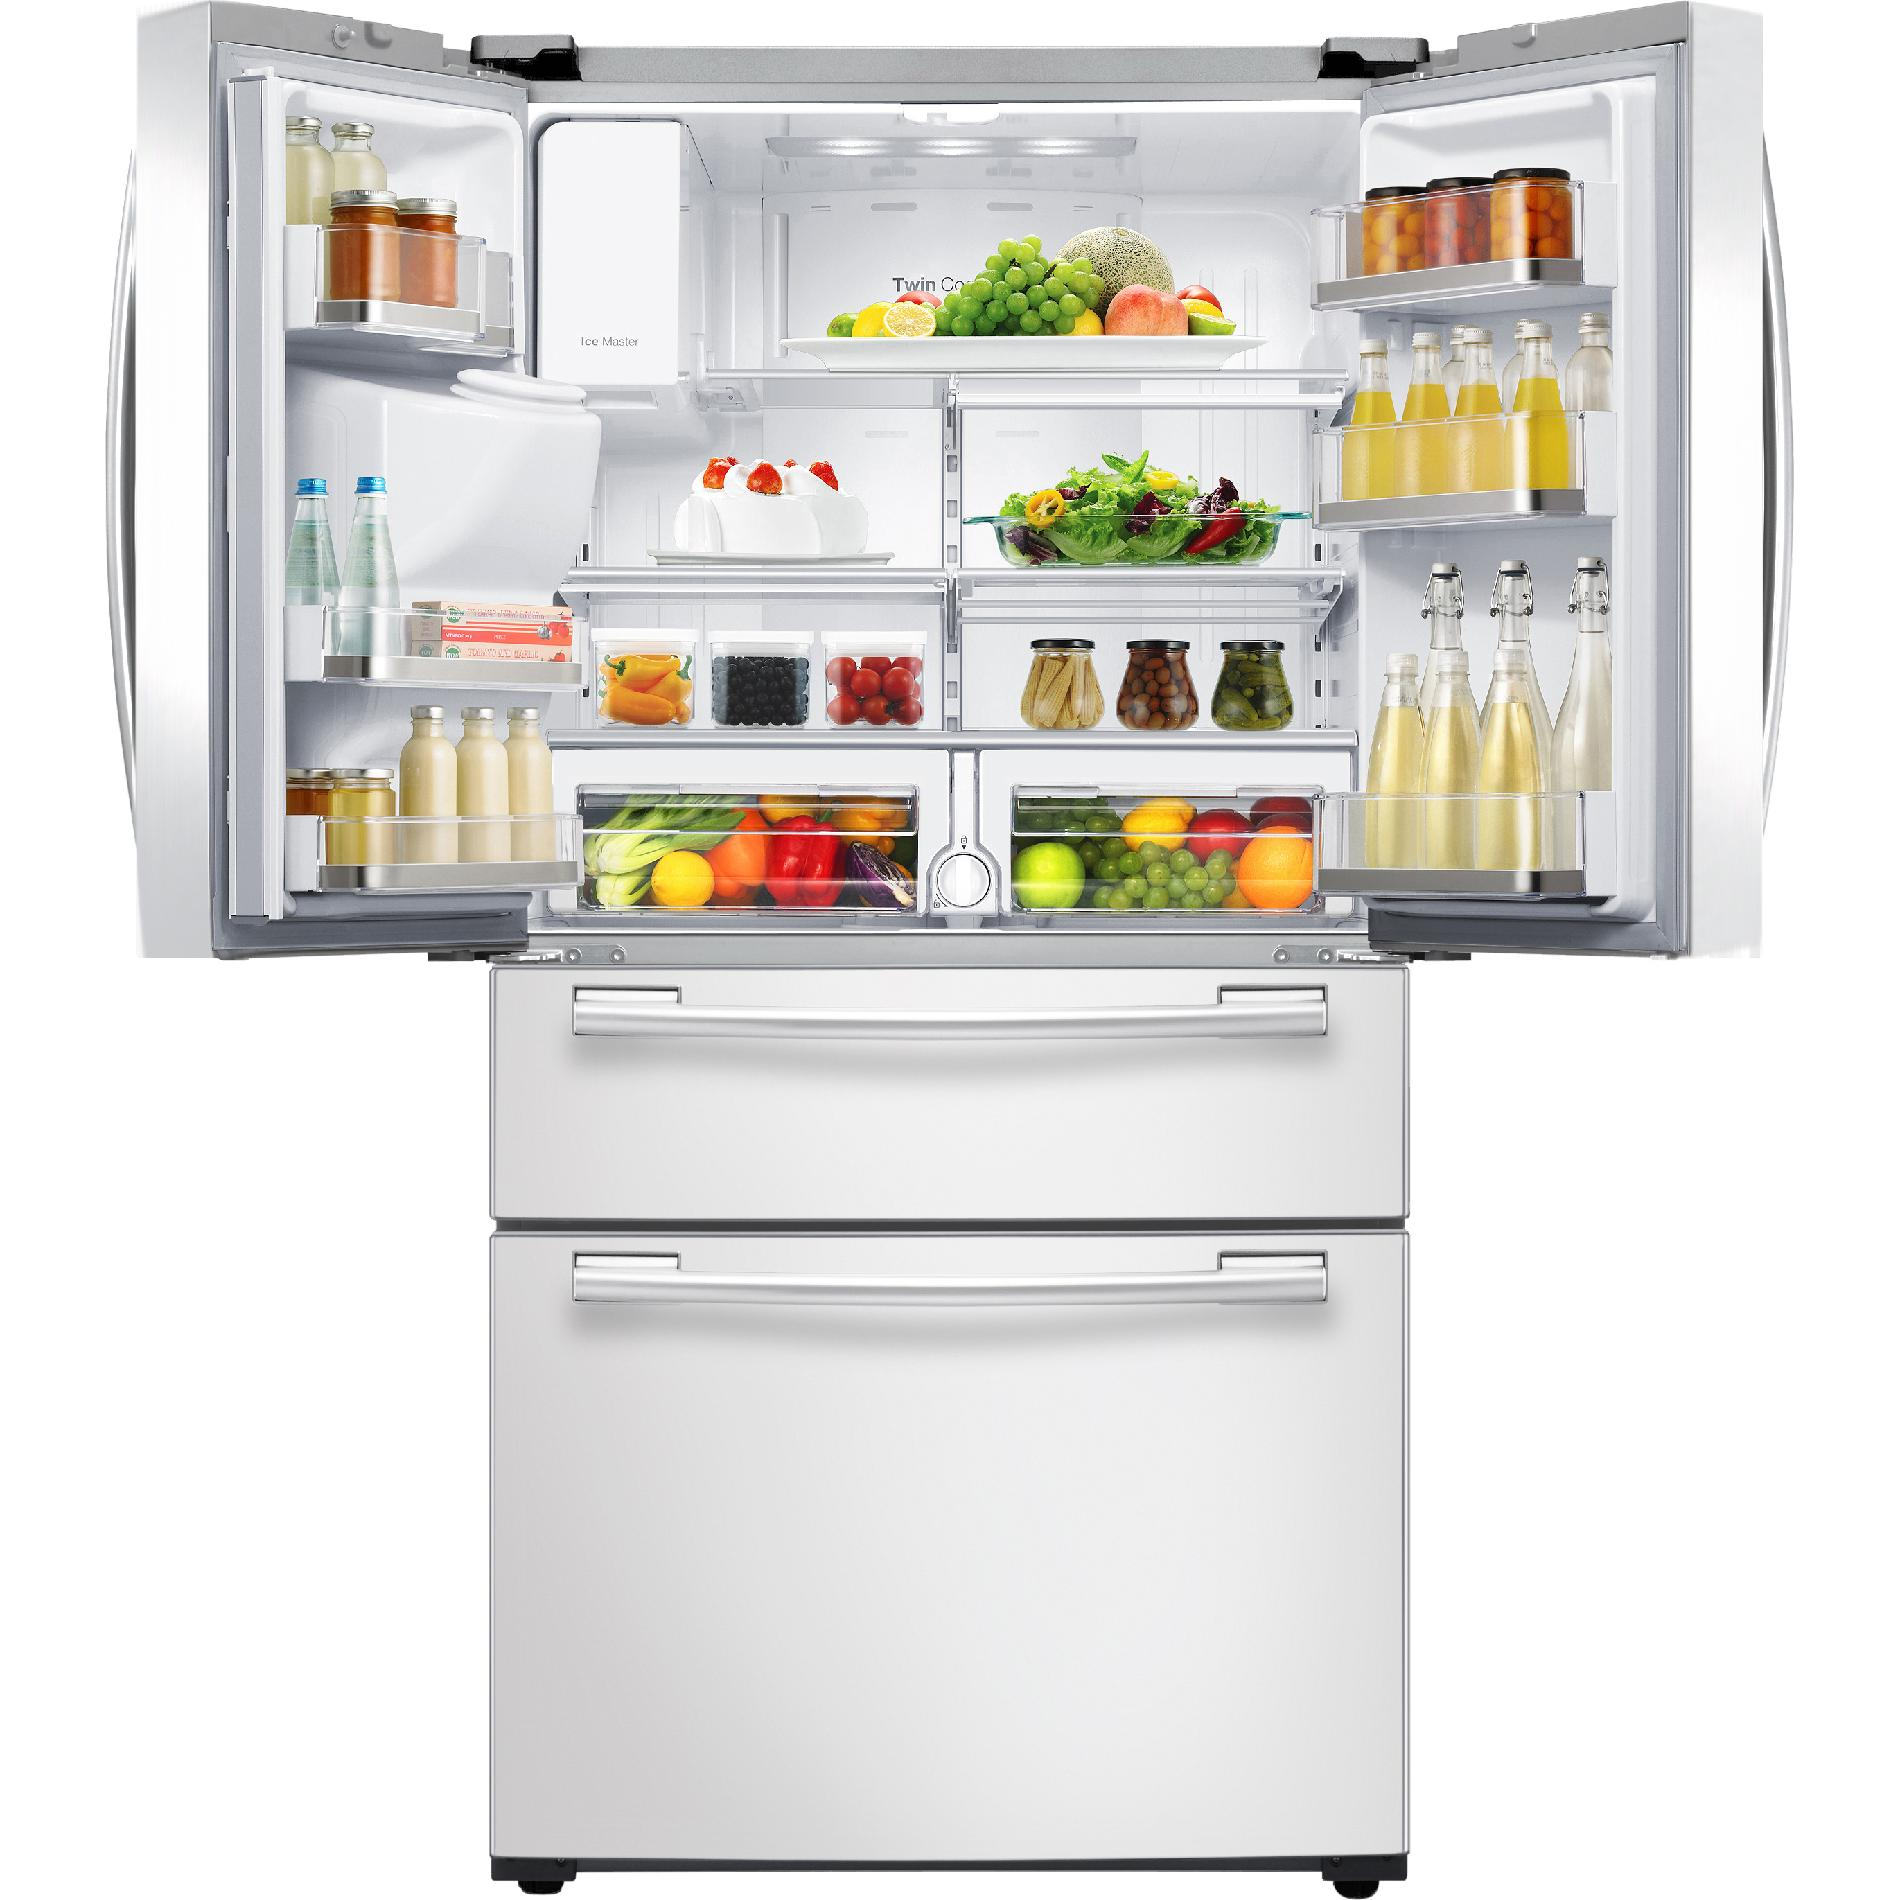 Samsung 25 cu. ft. 4-Door French Door Refrigerator - White